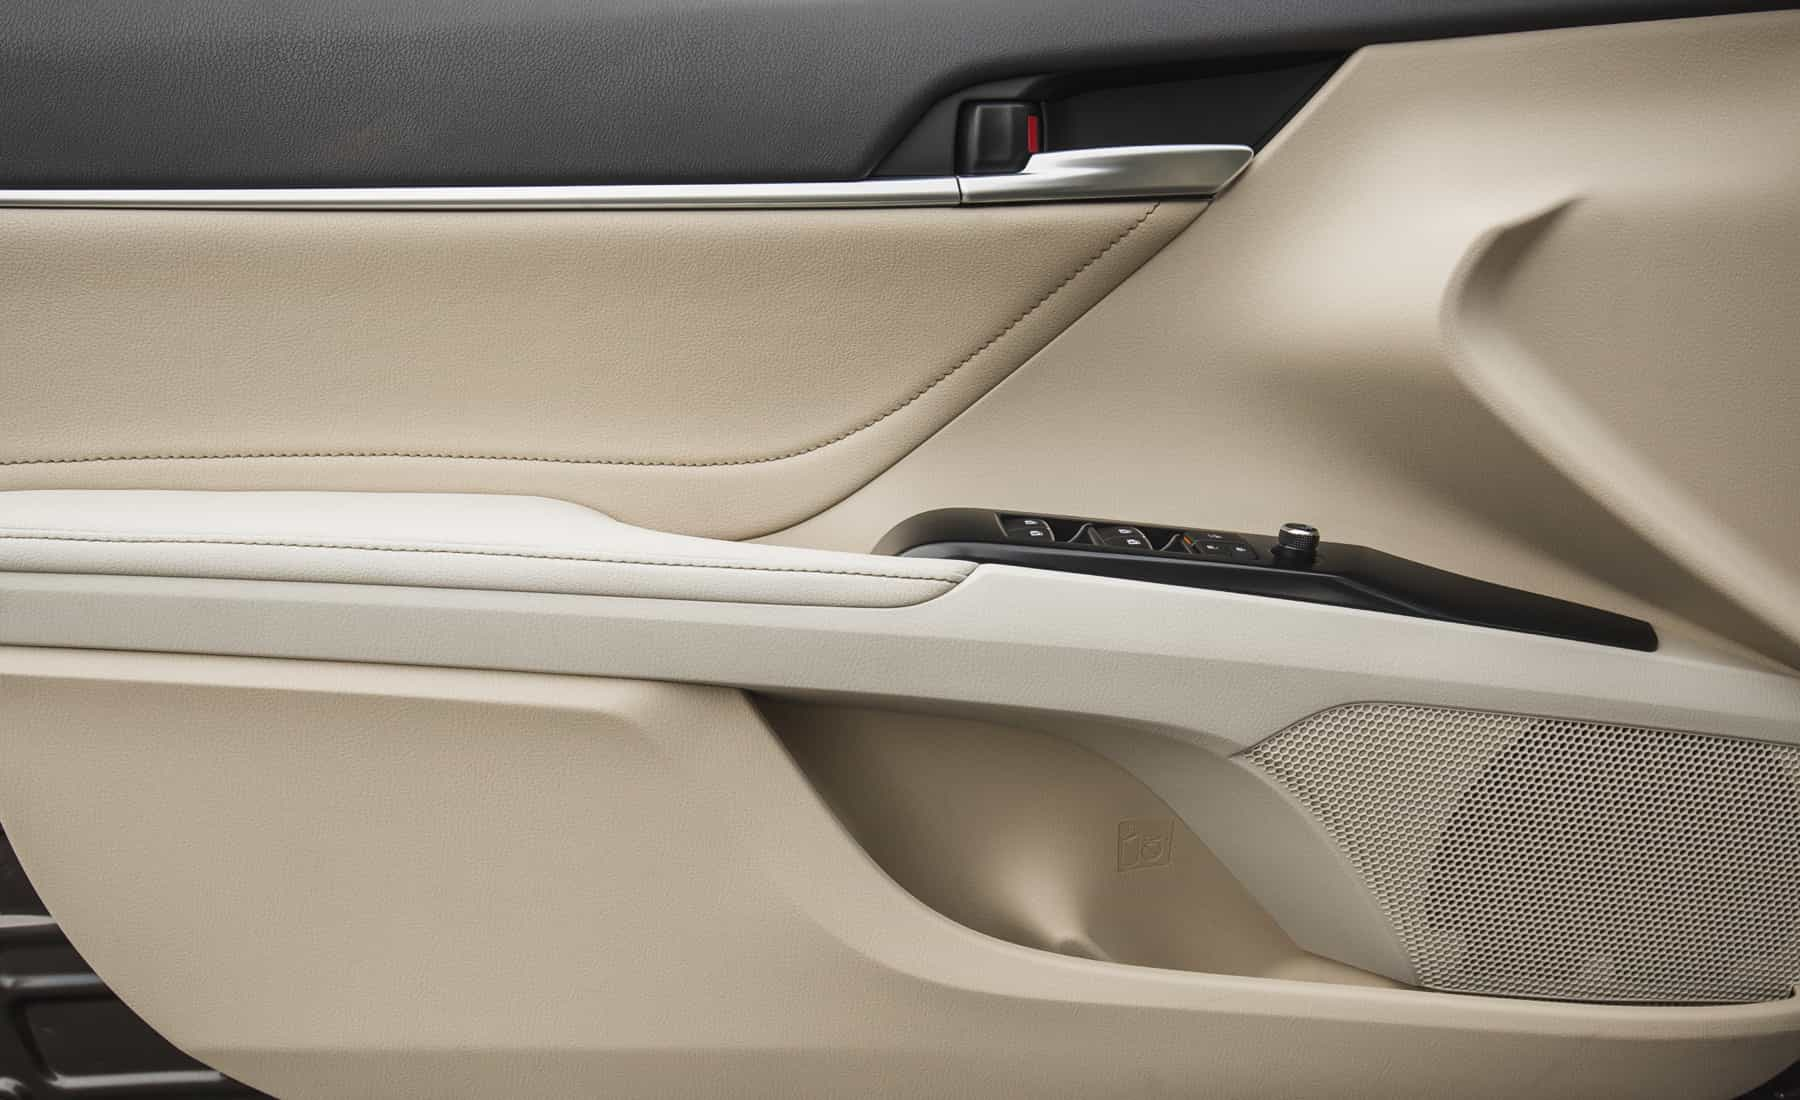 2018 Toyota Camry Hybrid XLE Interior View Door Trim Front (Photo 26 of 41)